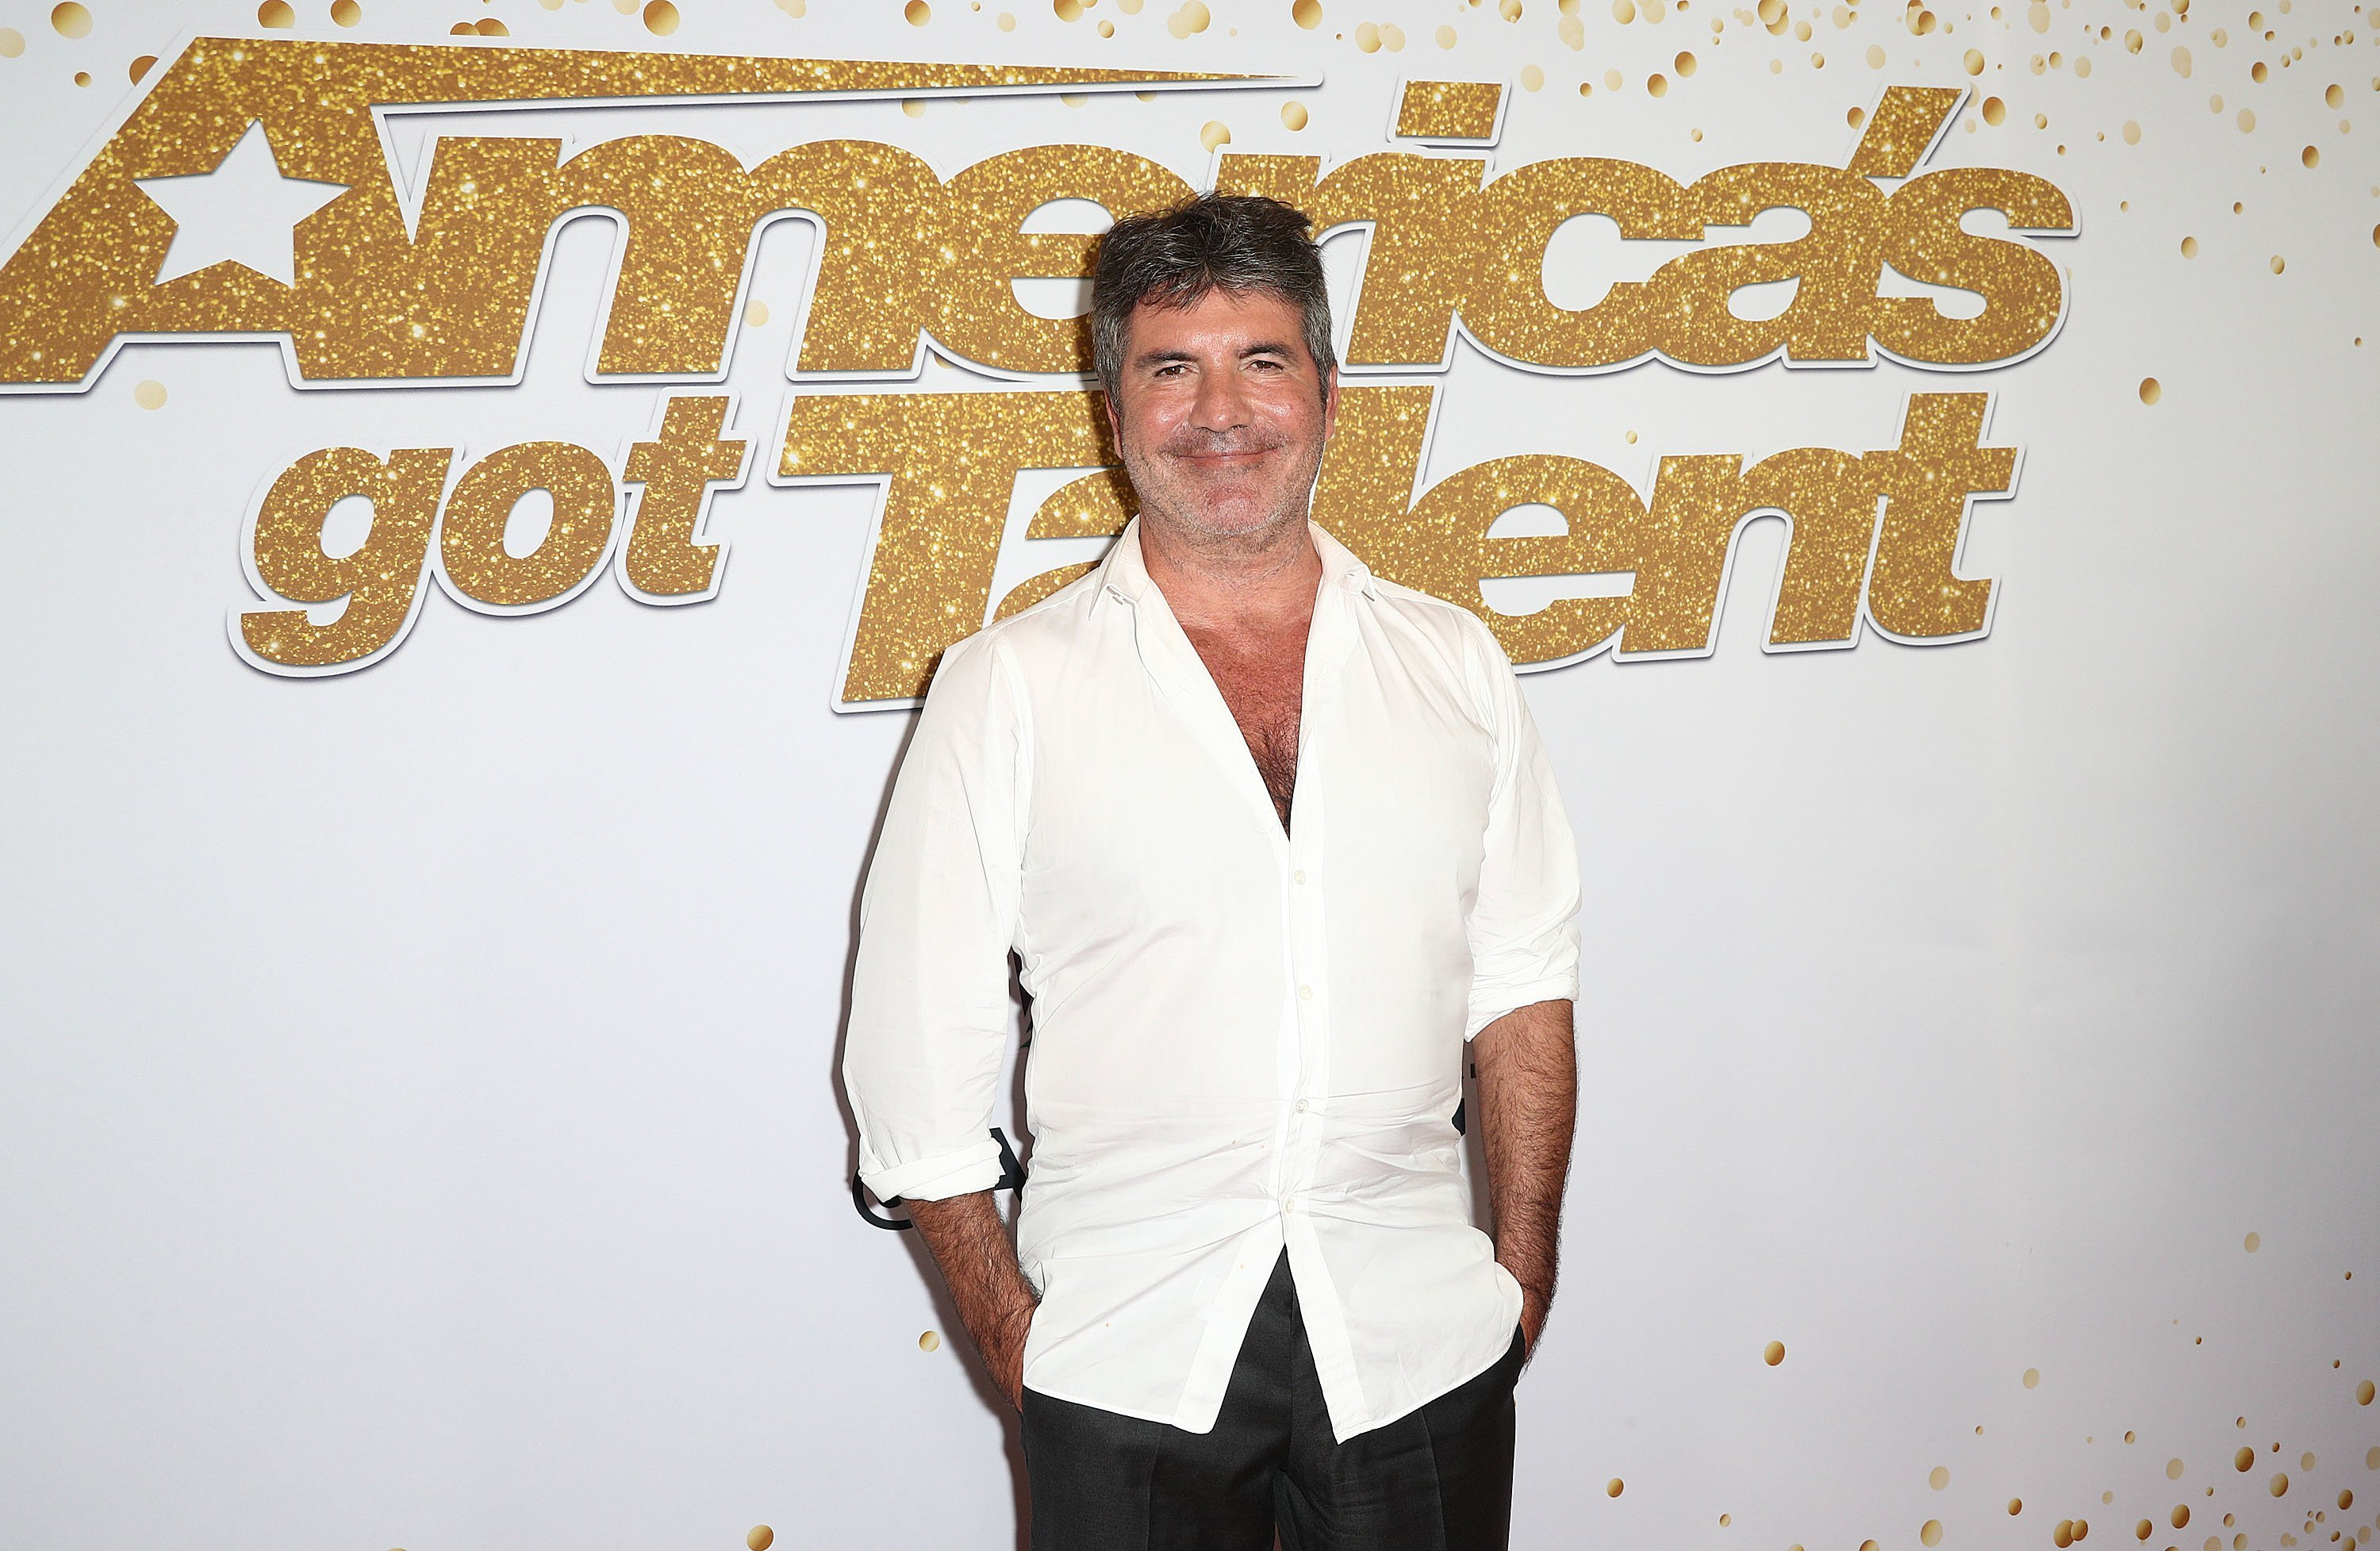 """Simon Cowell at an """"America's Got Talent"""" event 